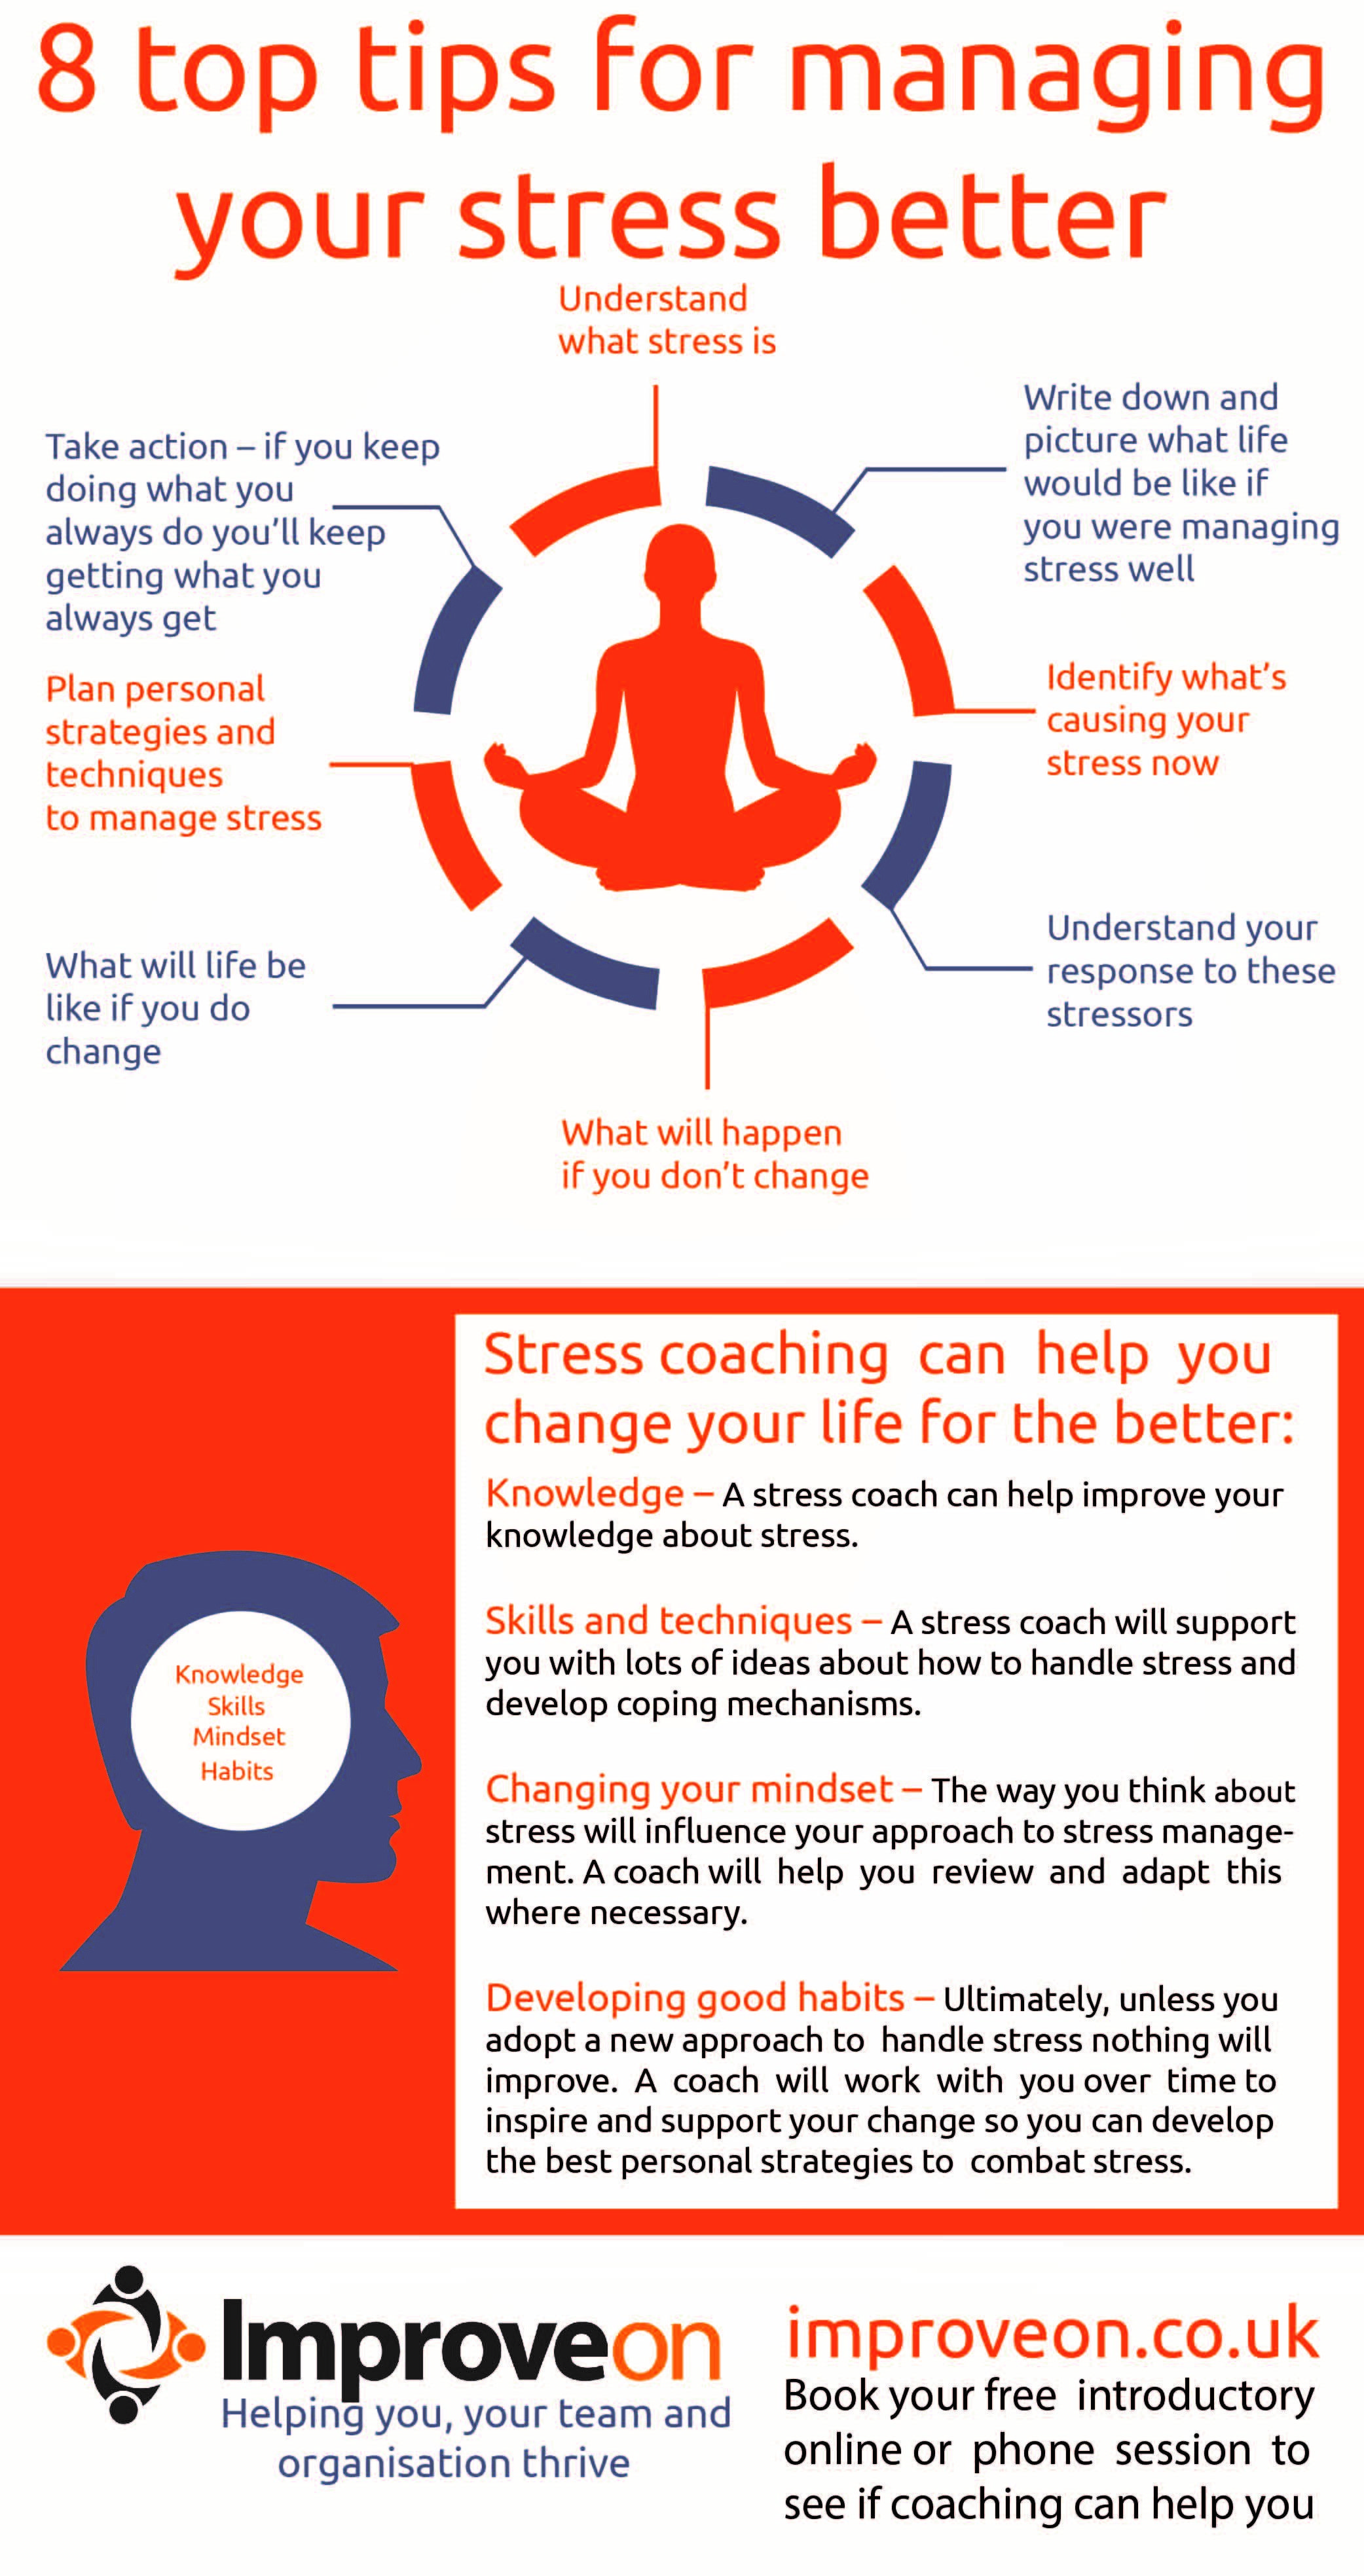 how do you handle stress and pressure successfully